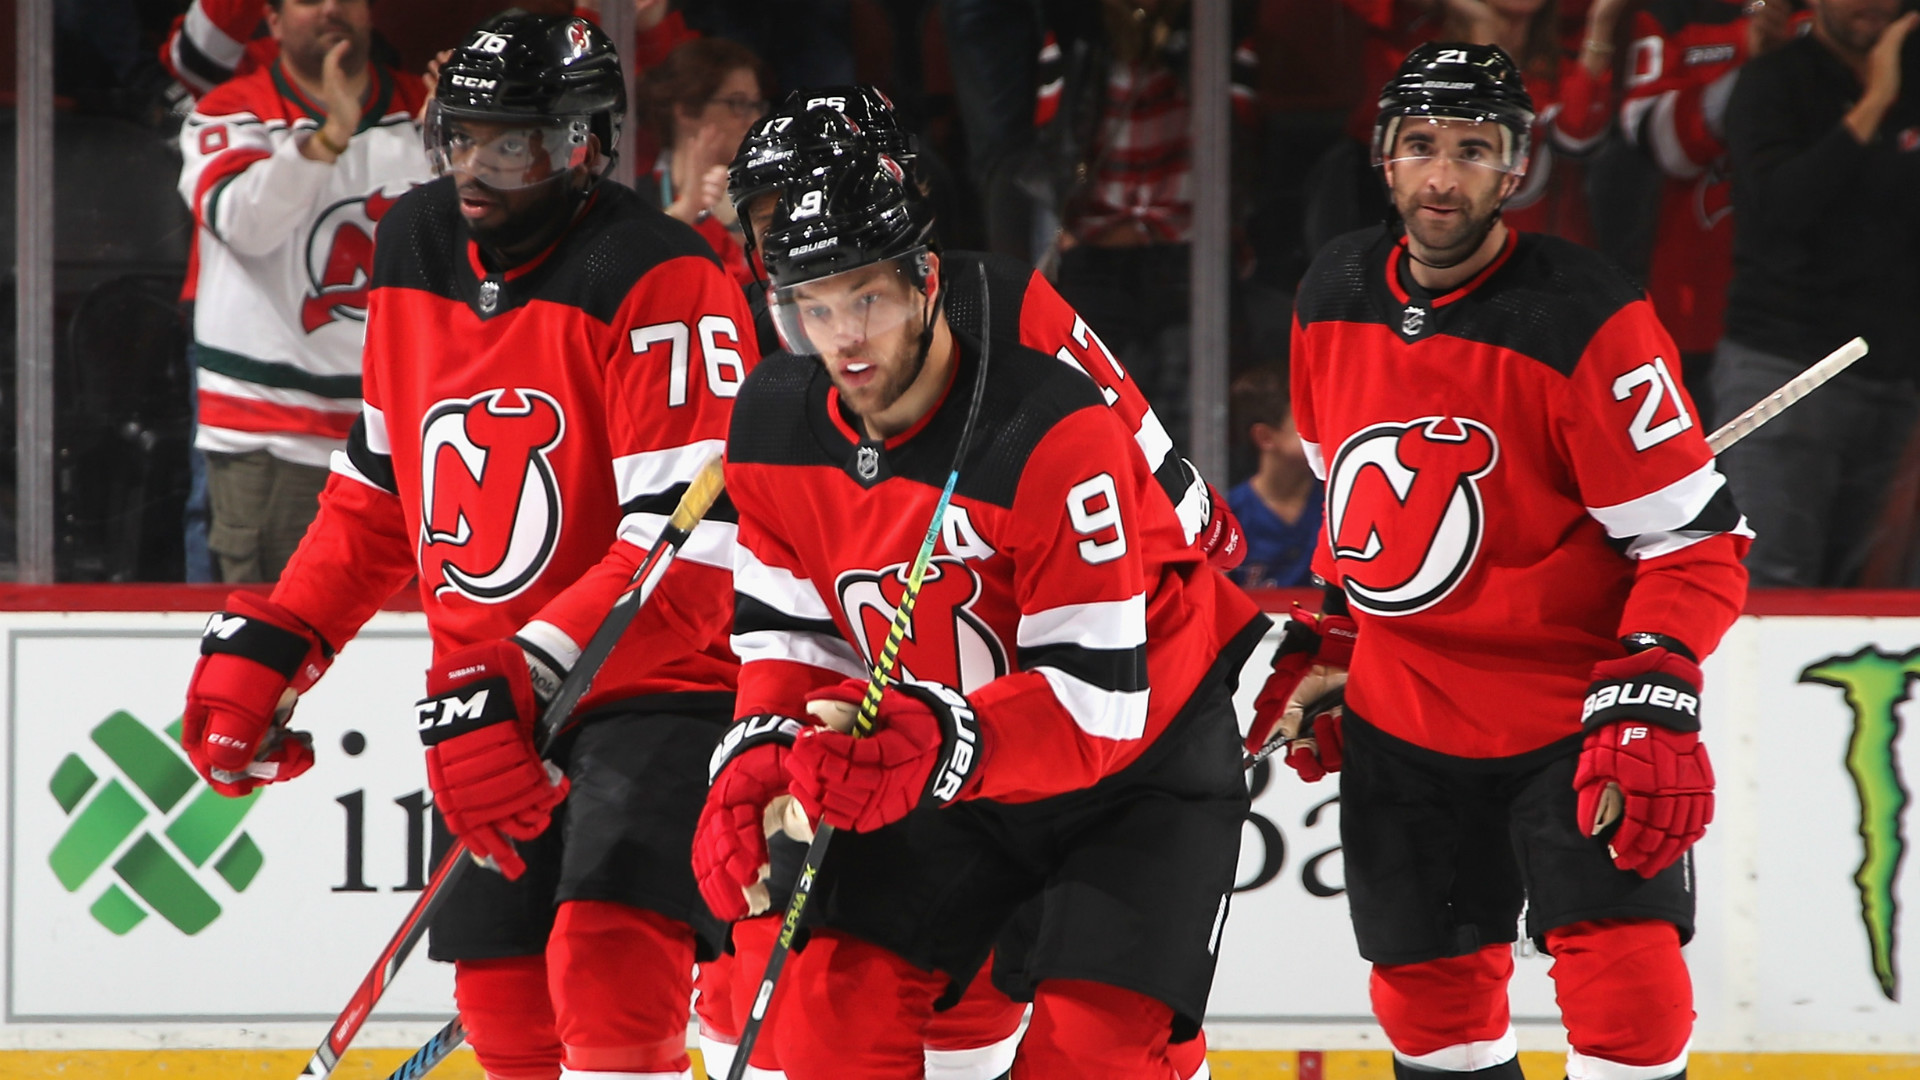 Devils' Taylor Hall scores preseason goal, nets for first time since December